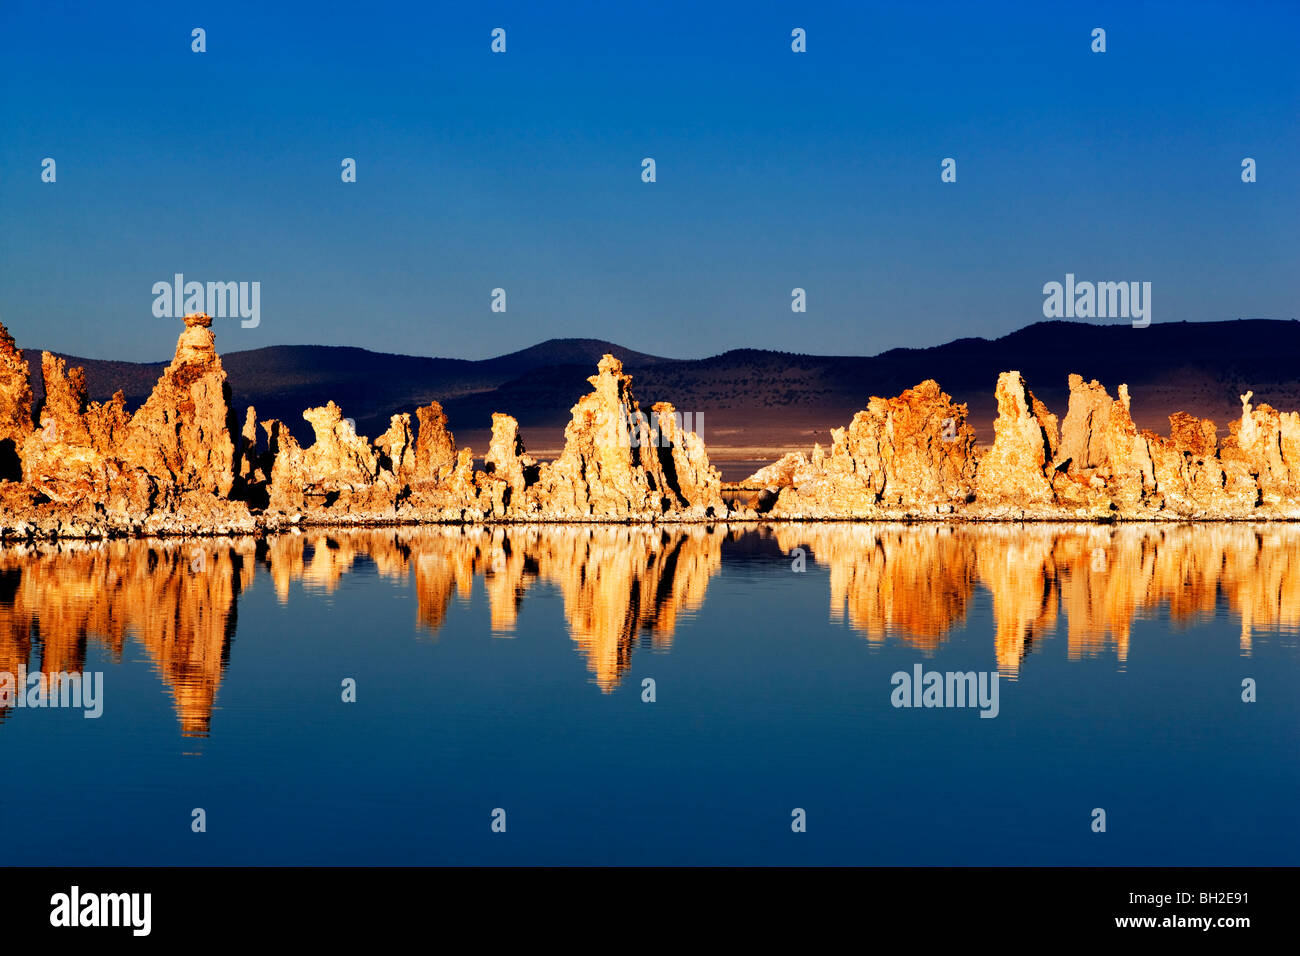 Tuffeau et de reflets dans le lac Mono, en Californie Photo Stock